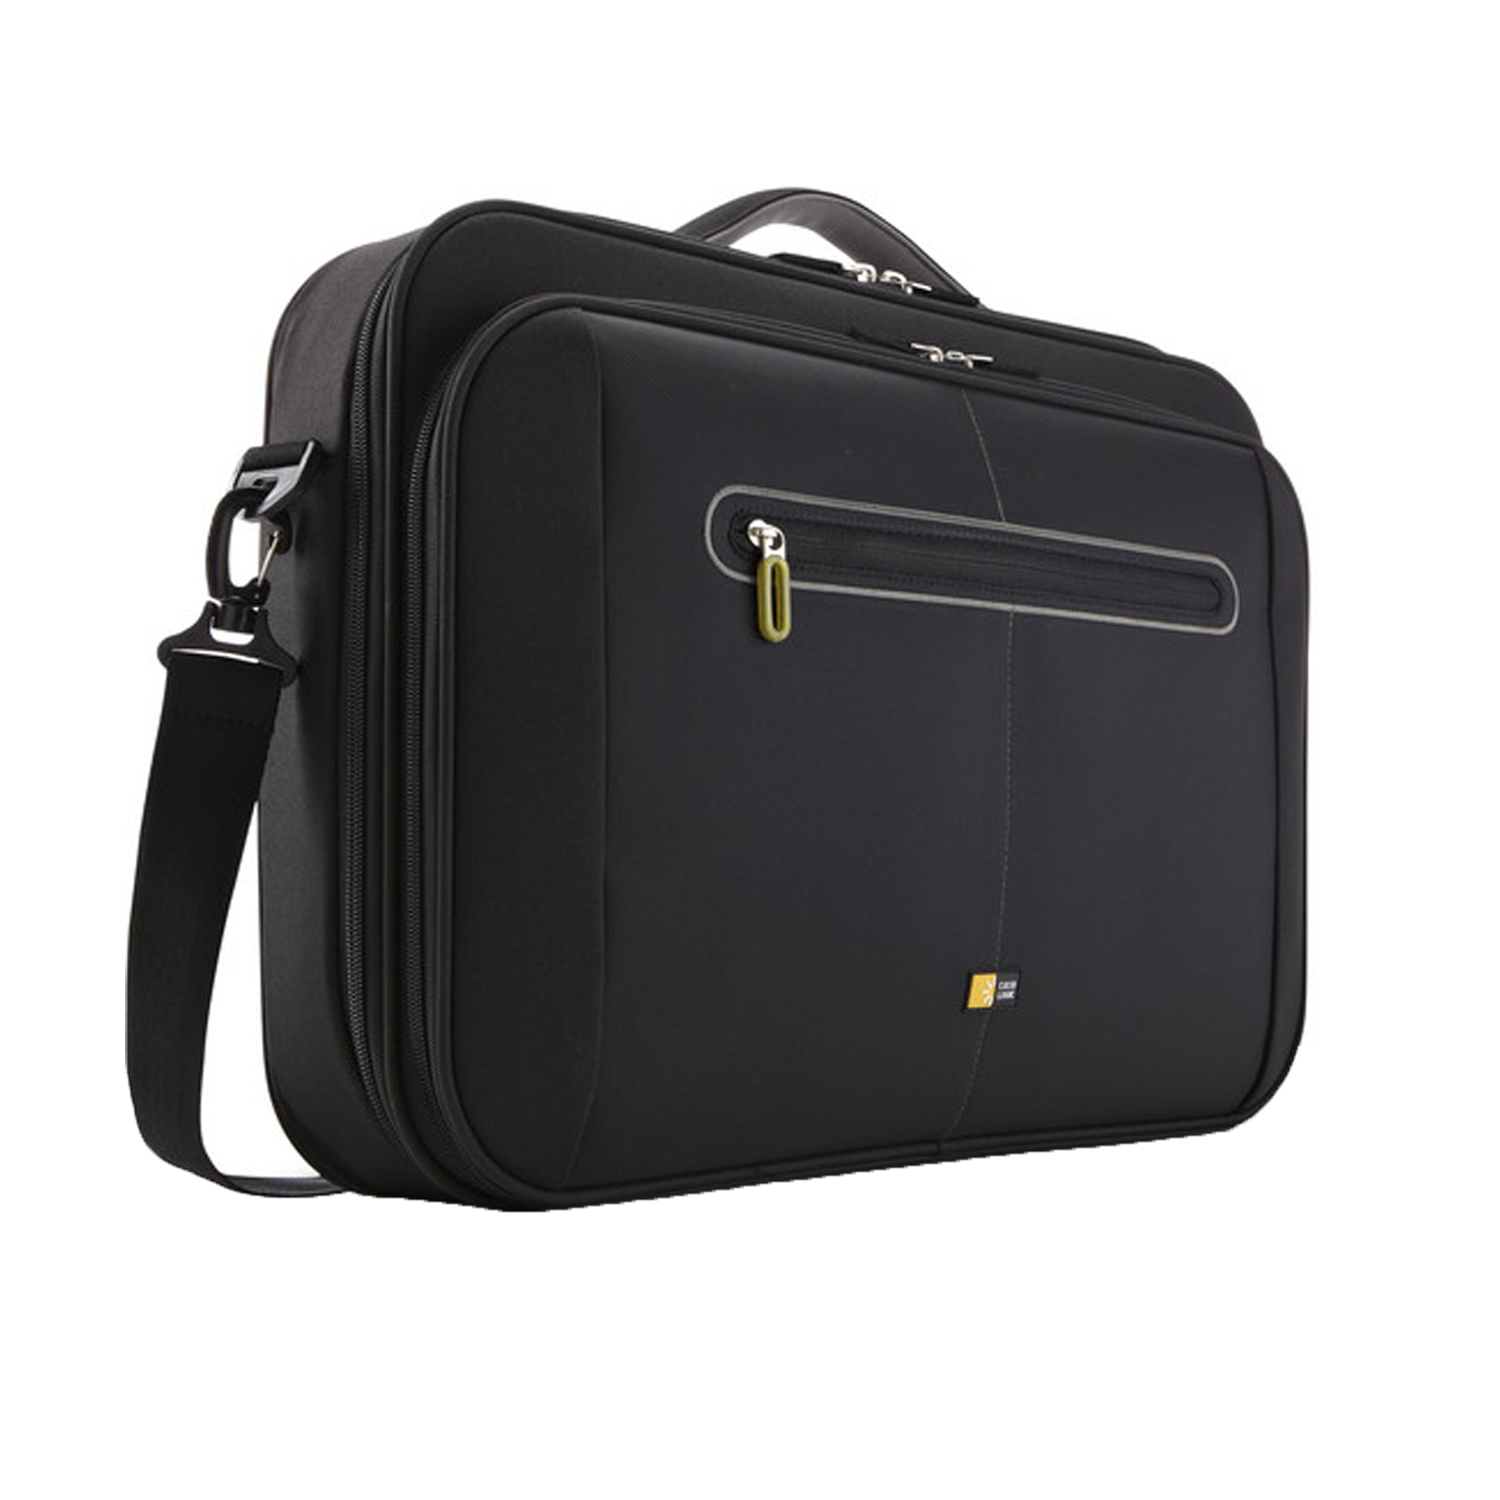 Case Logic 15.6-Inch Laptop /& Tablet Briefcase Tablet Bag Computer Carry Work